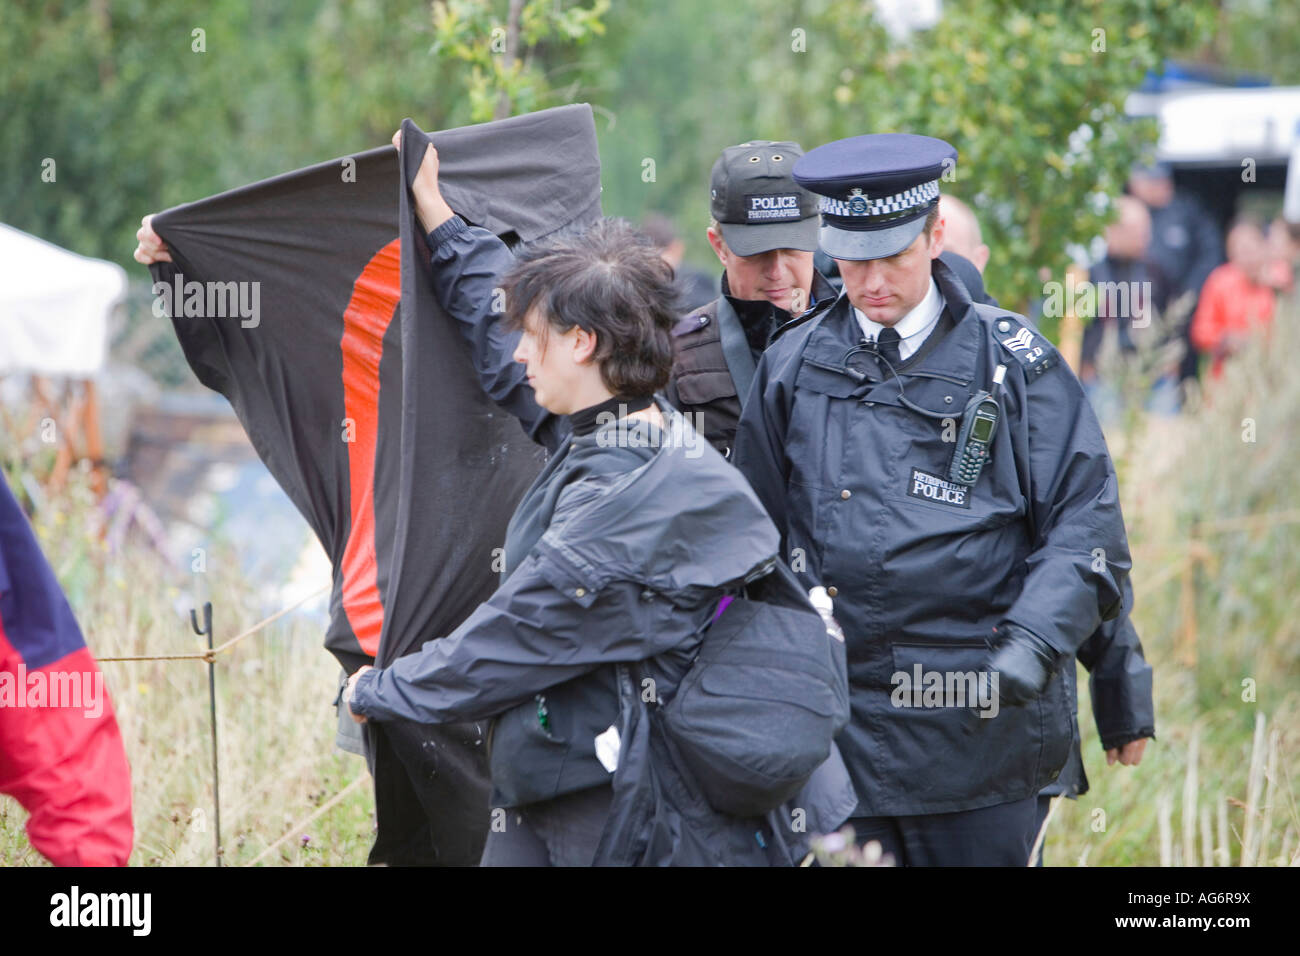 Protestors try to prevent police photographers from photographing protestors at the Climate Camp, Heathrow, UK Stock Photo